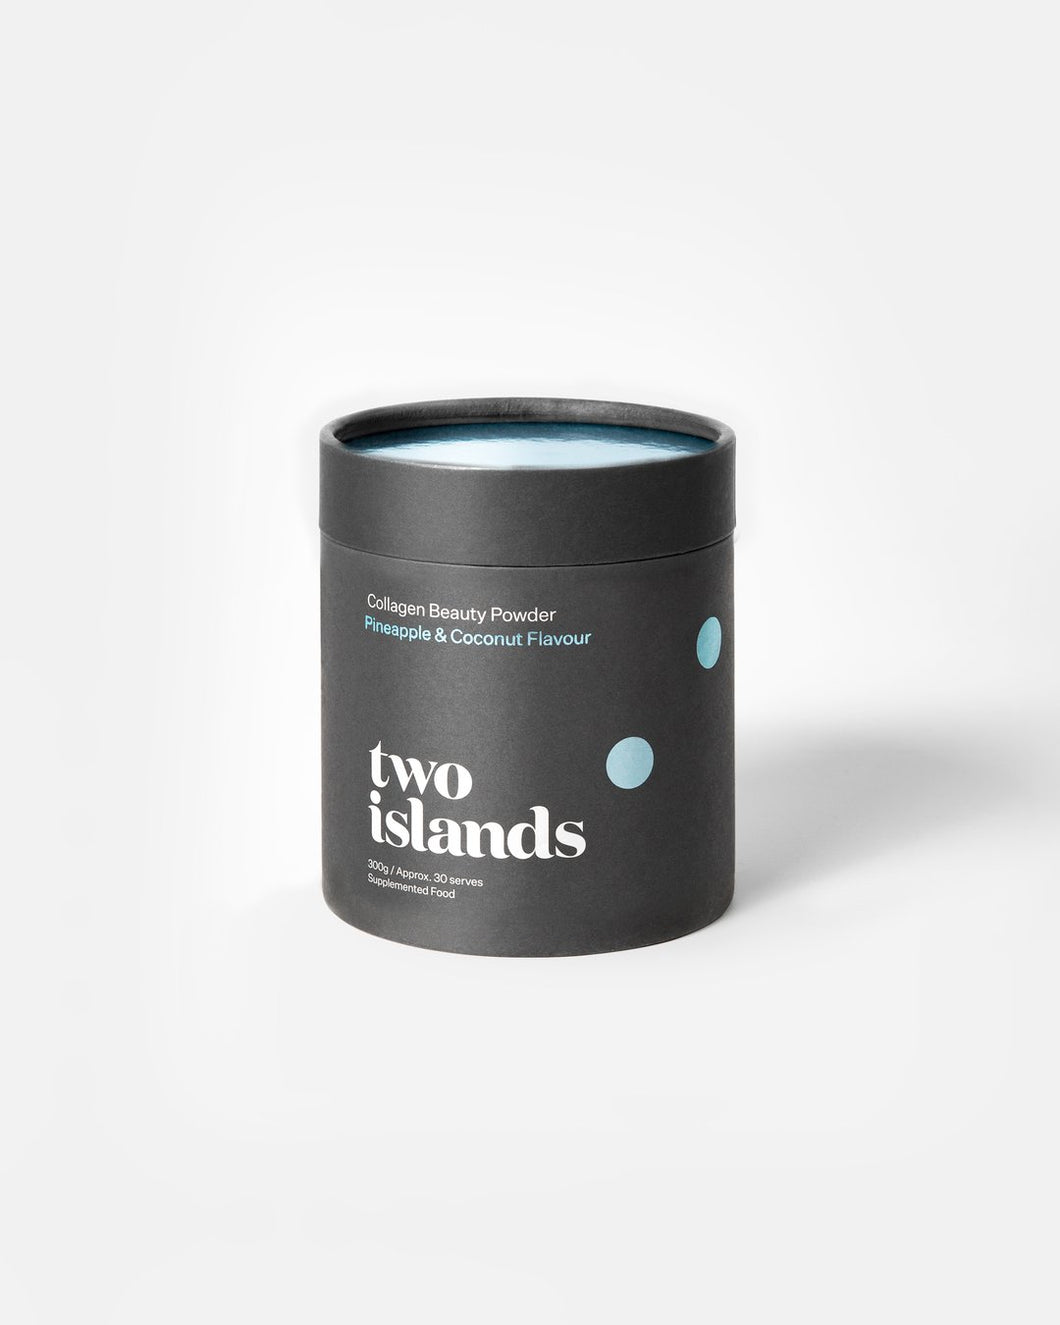 Two Islands Pineapple and Coconut Collagen Powder